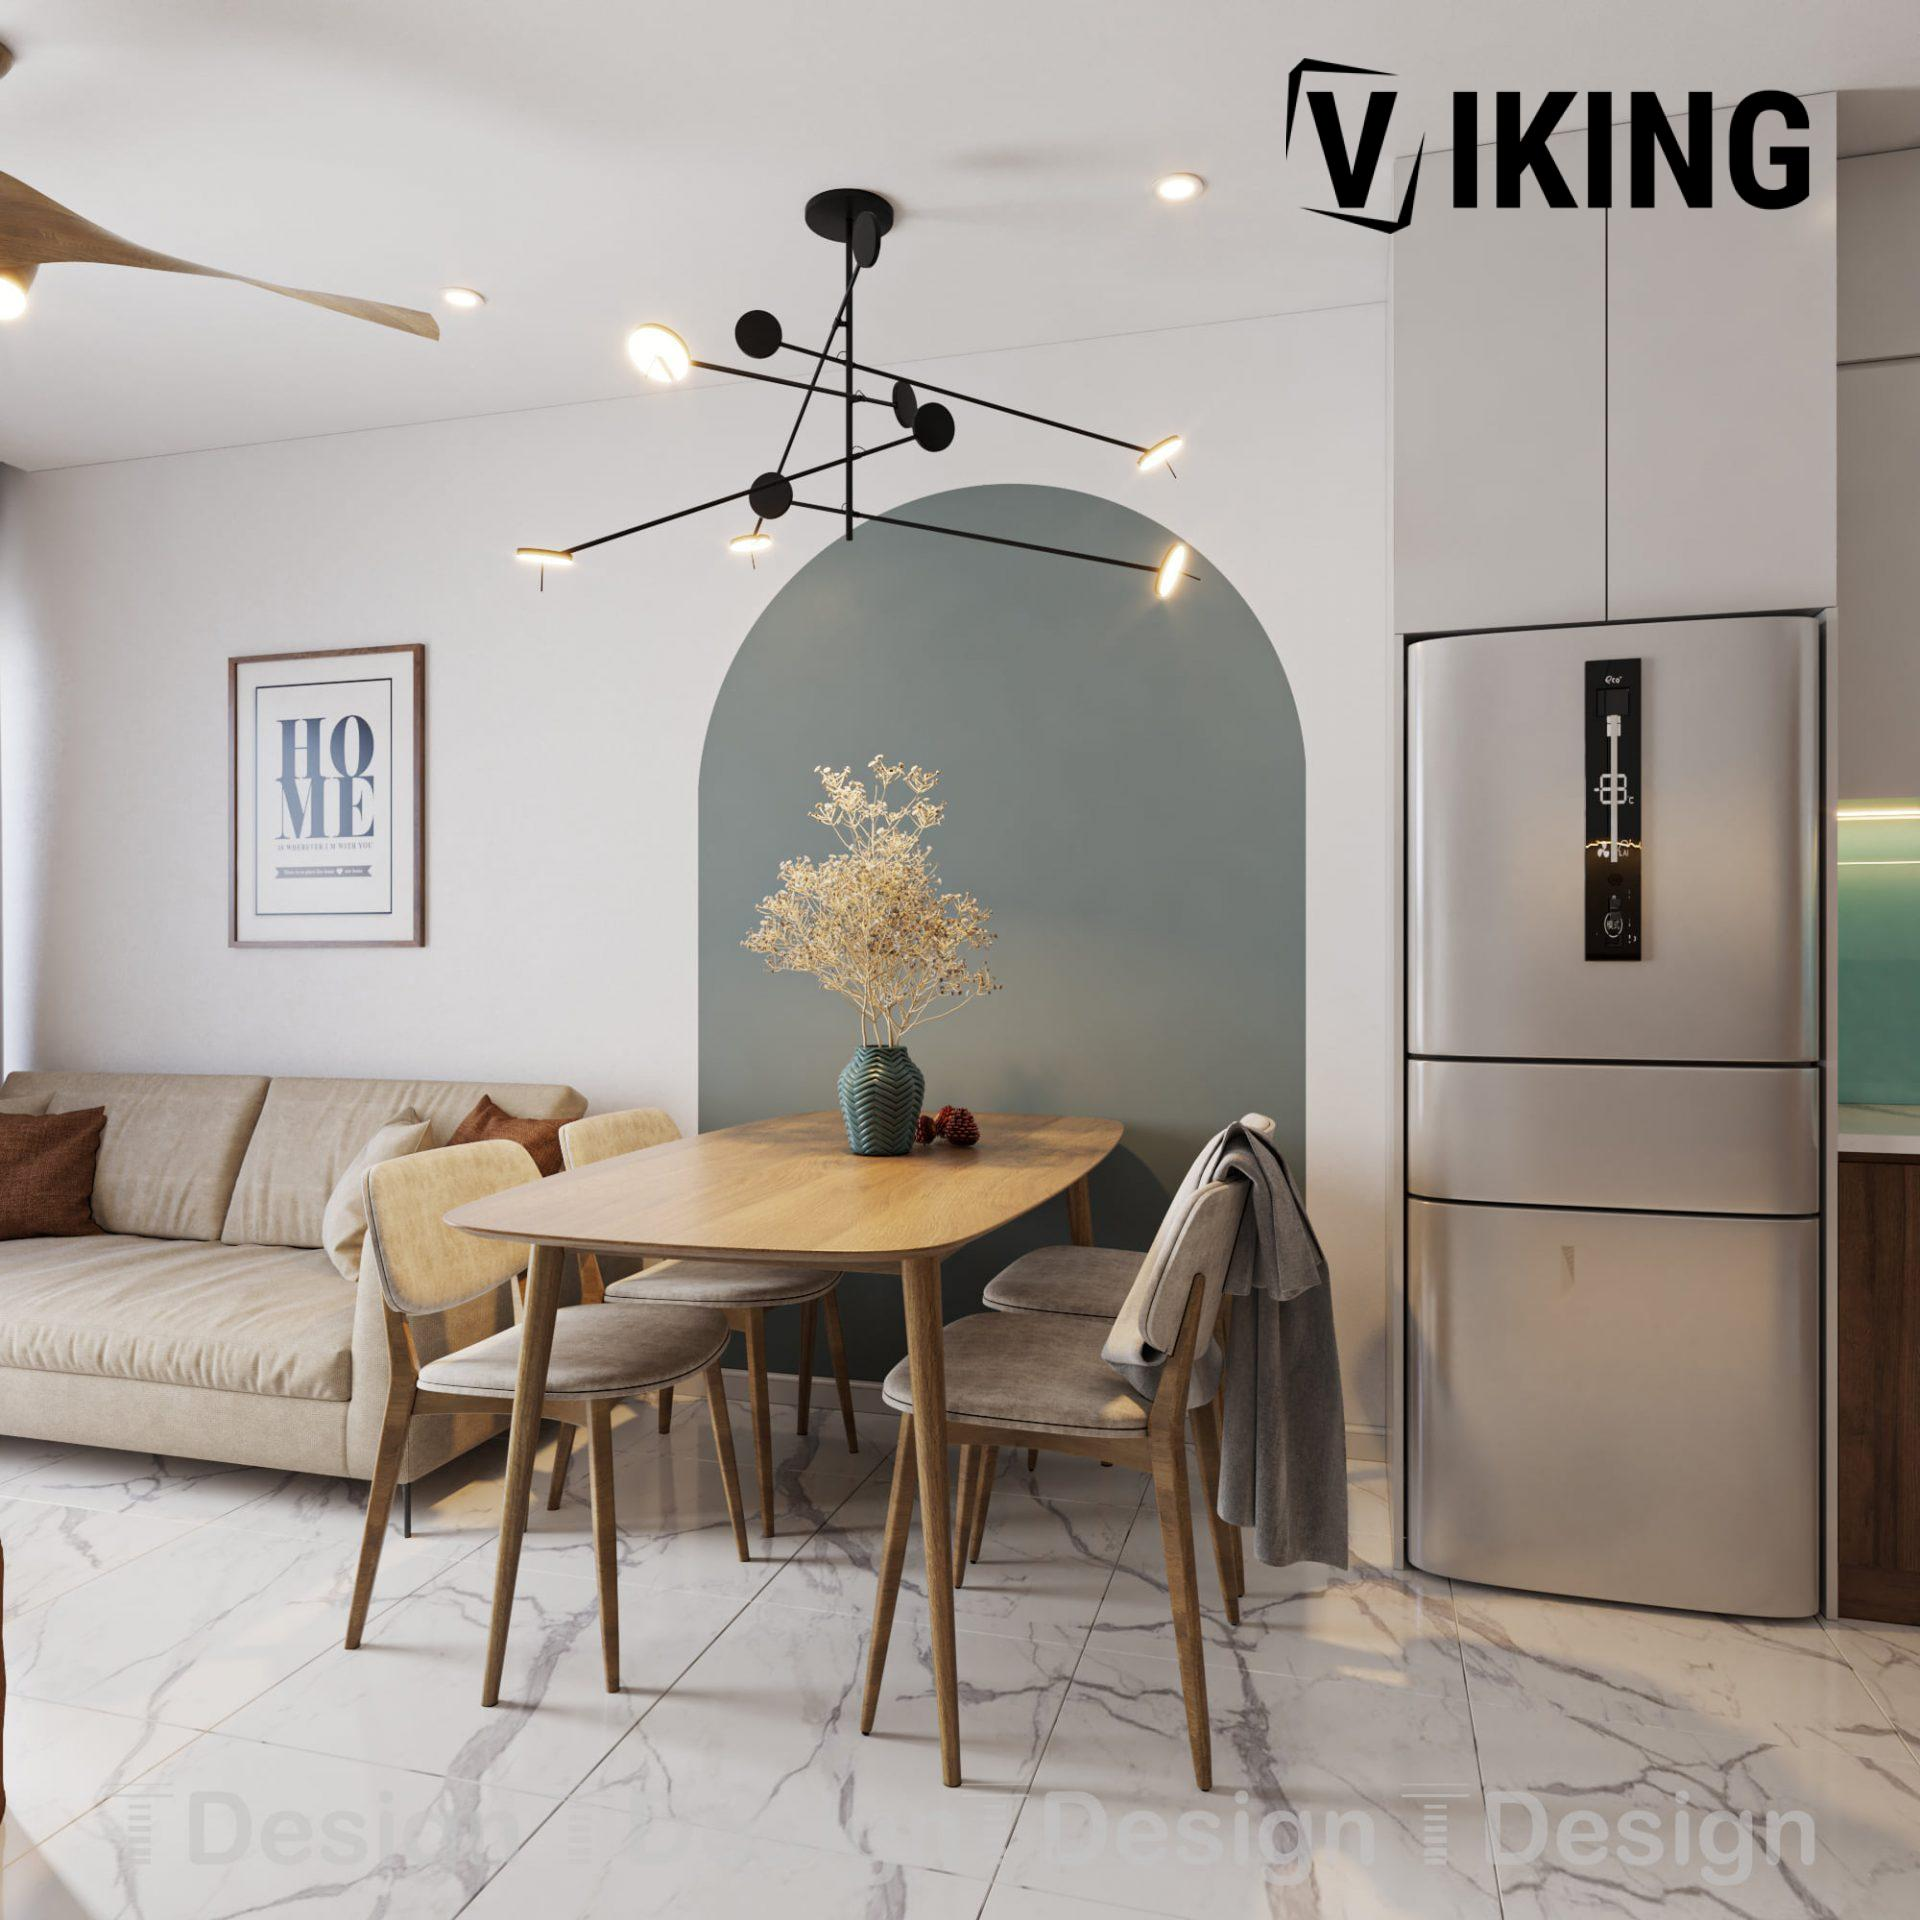 4534.Living Kitchenroom Scene Sketchup File free download by Trong Thanh 5